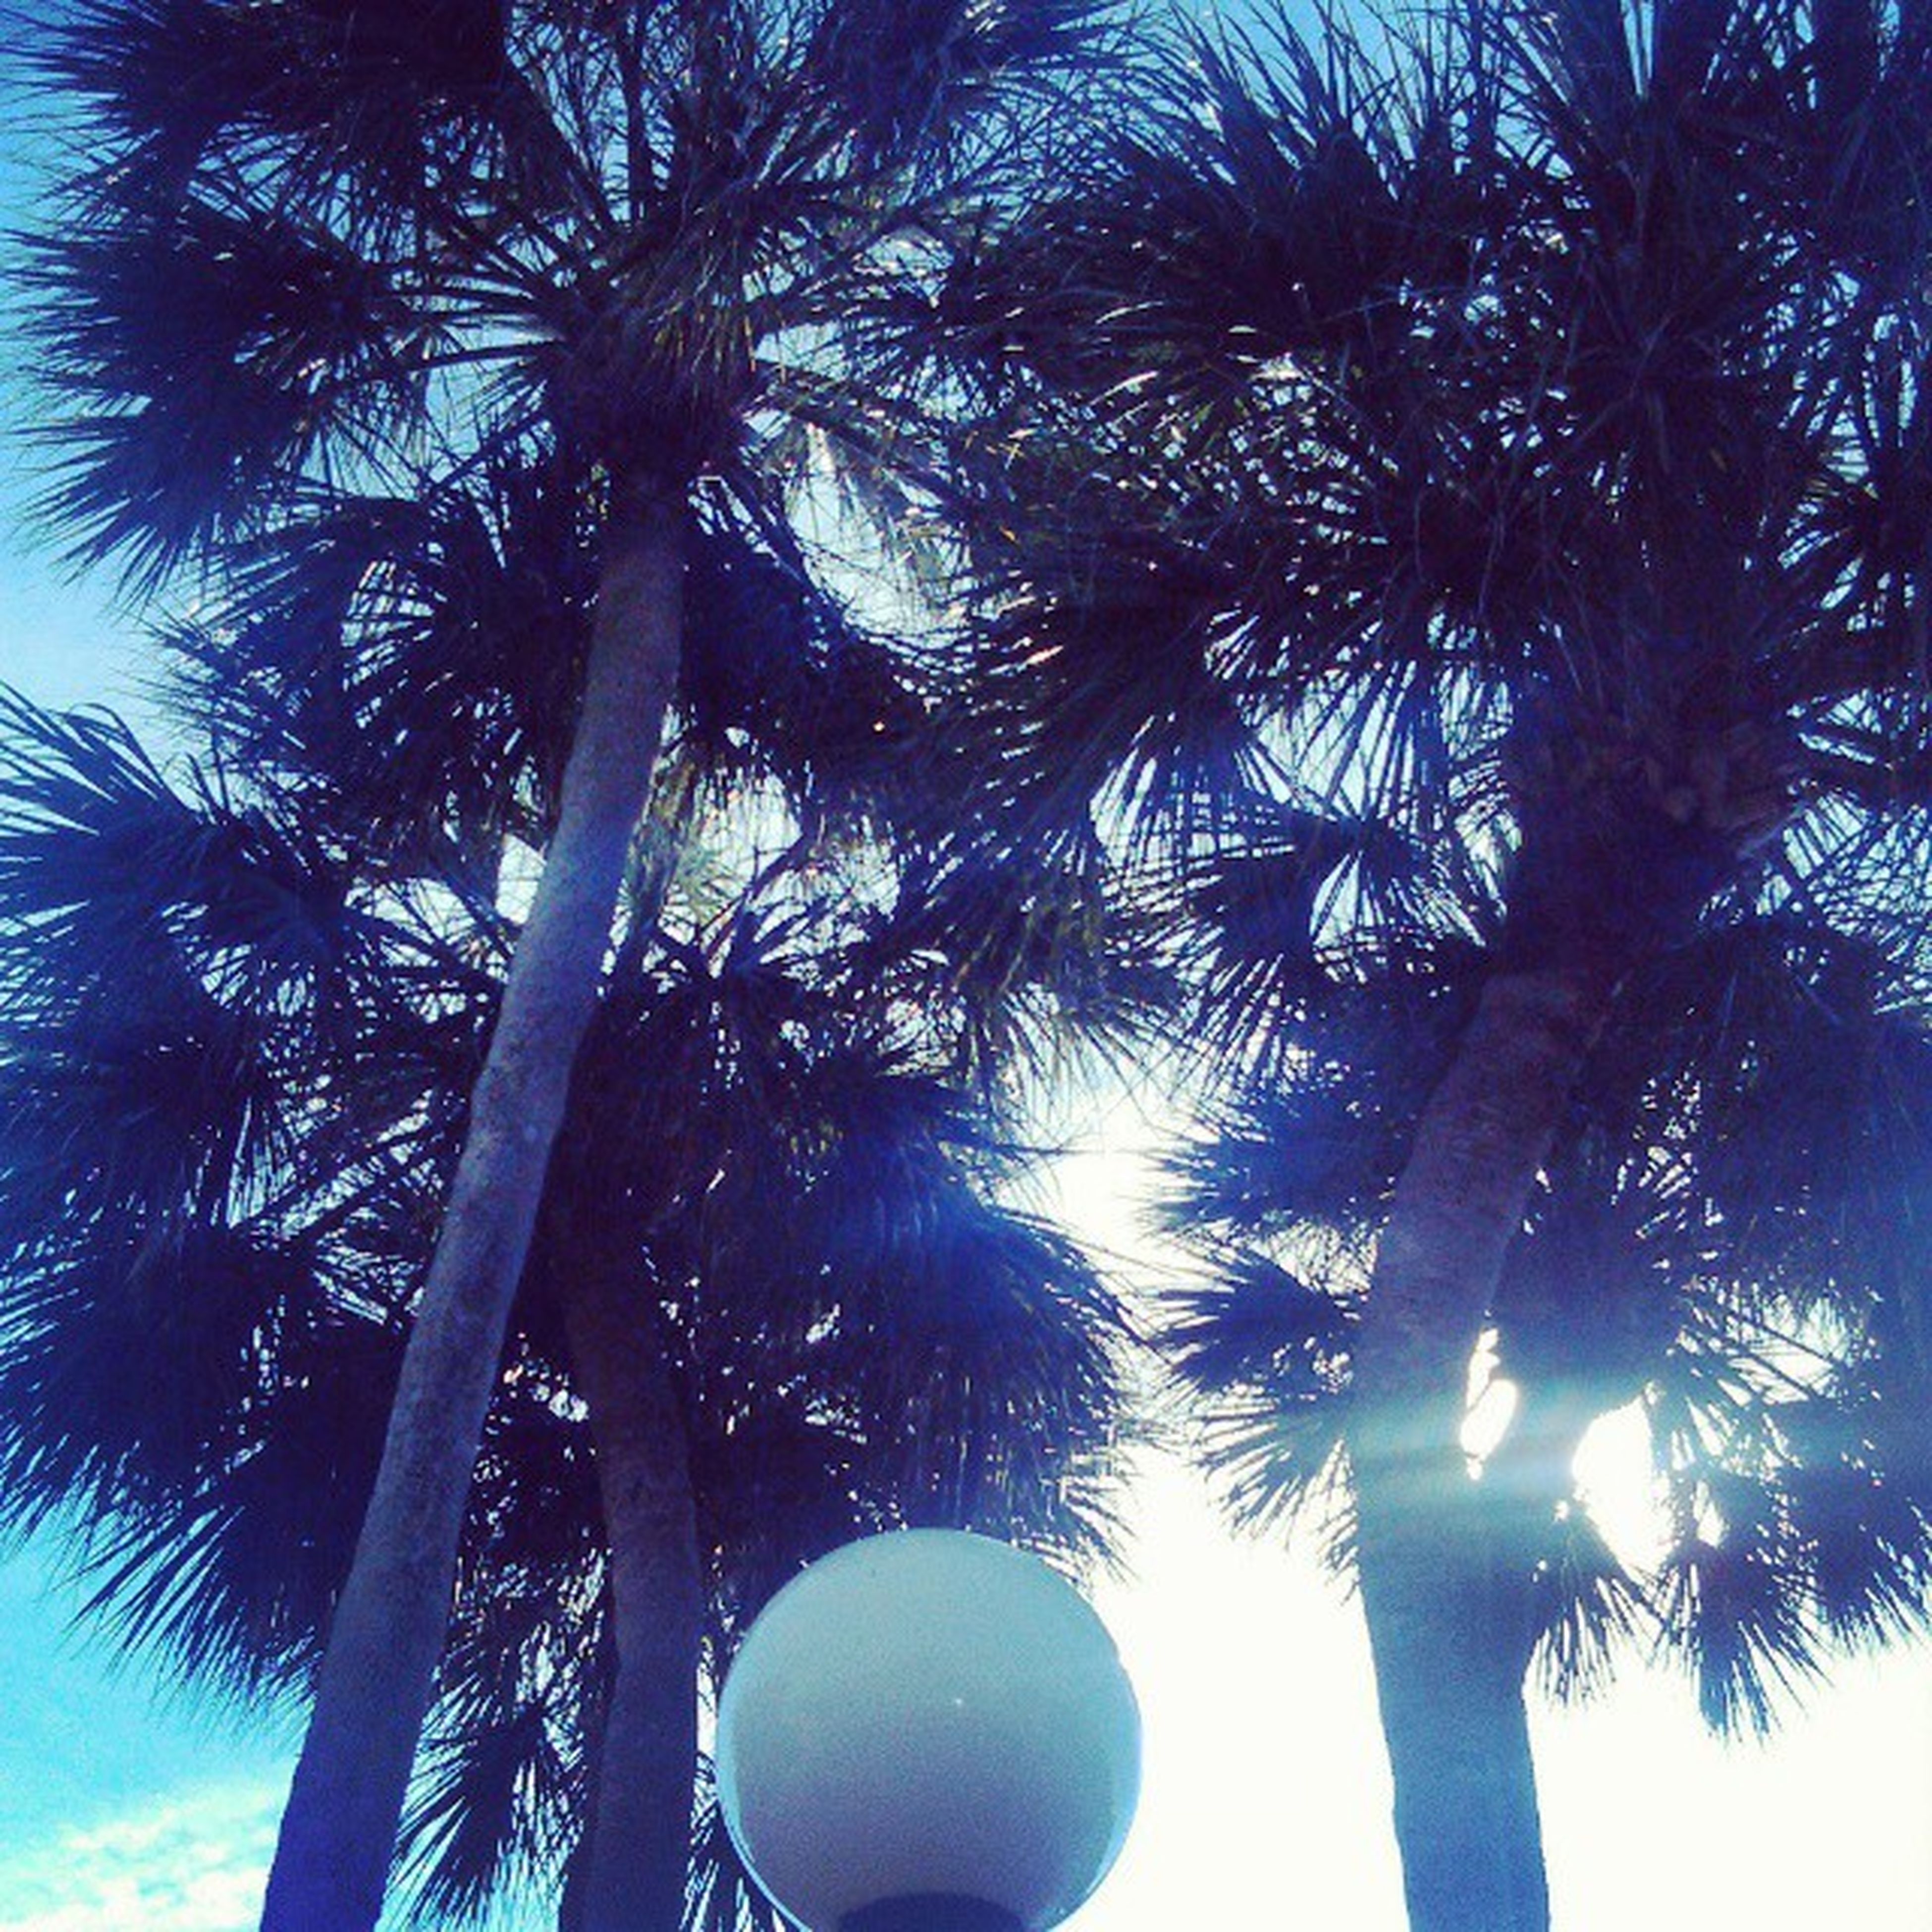 palm tree, low angle view, tree, growth, silhouette, tree trunk, palm leaf, sun, tall - high, sky, clear sky, nature, branch, sunlight, tranquility, beauty in nature, blue, sunbeam, lens flare, outdoors